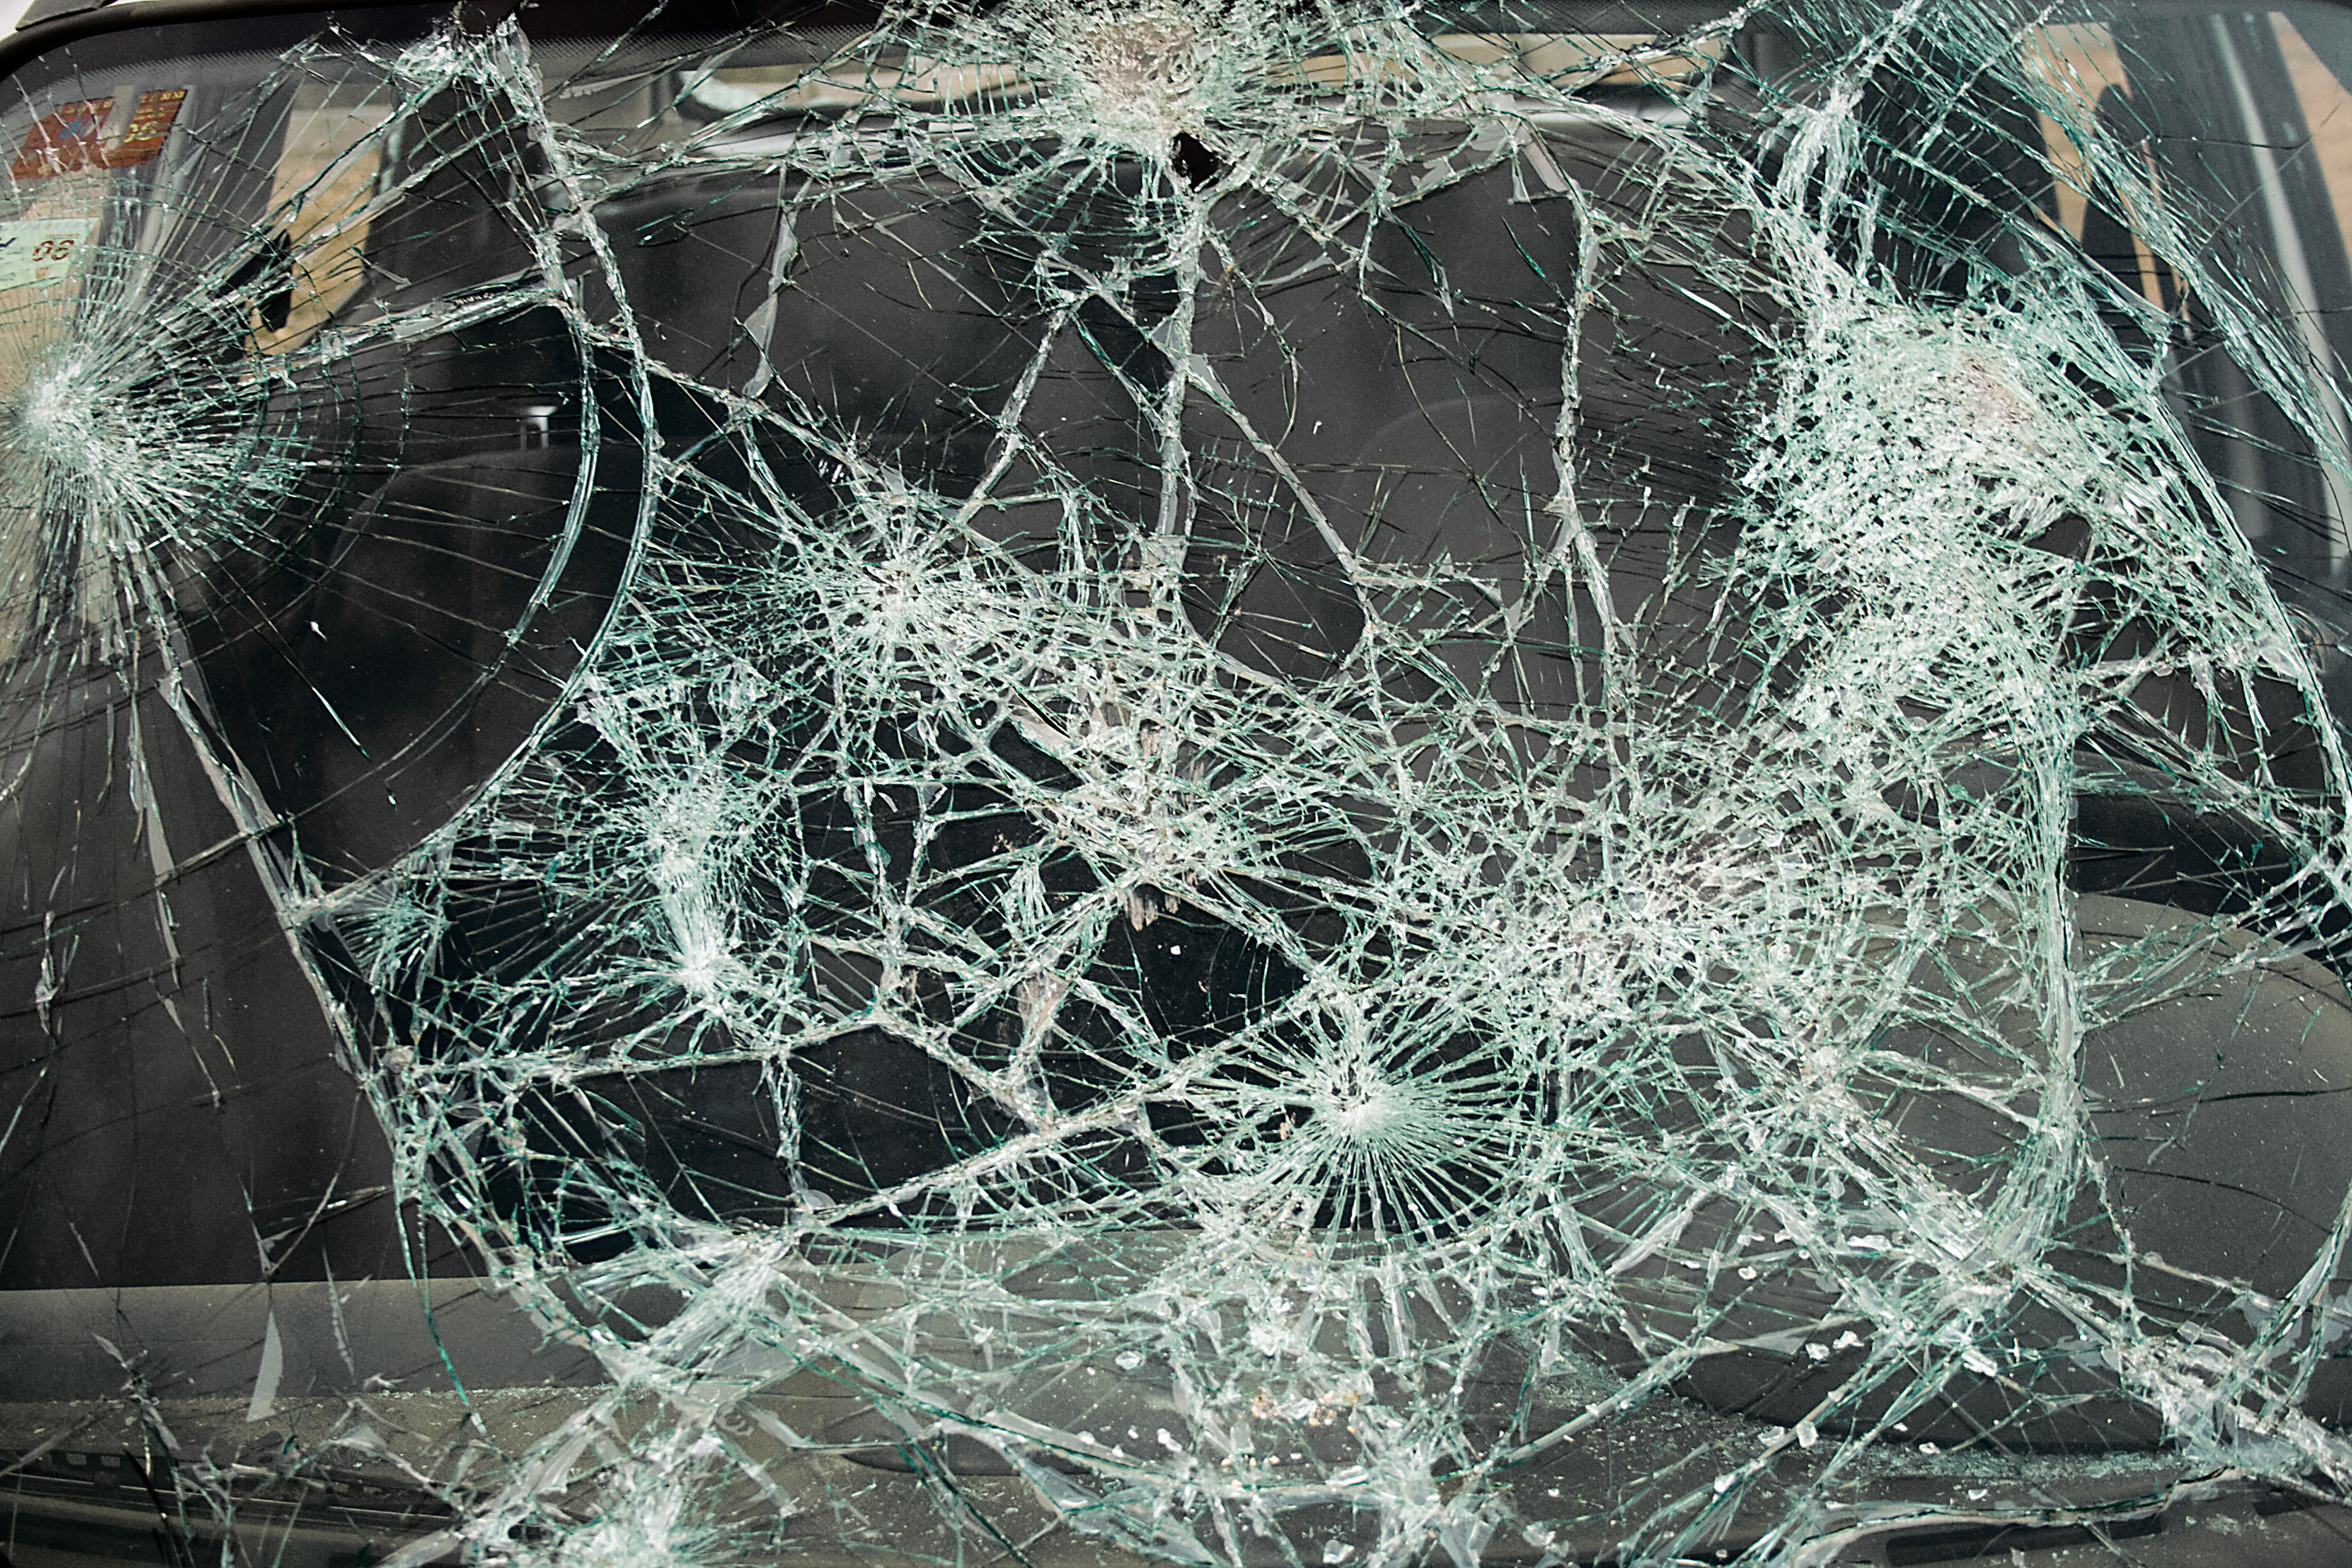 Res: 2916x1944, 45 Realistic Cracked and Broken Screen Wallpapers Technosamrat